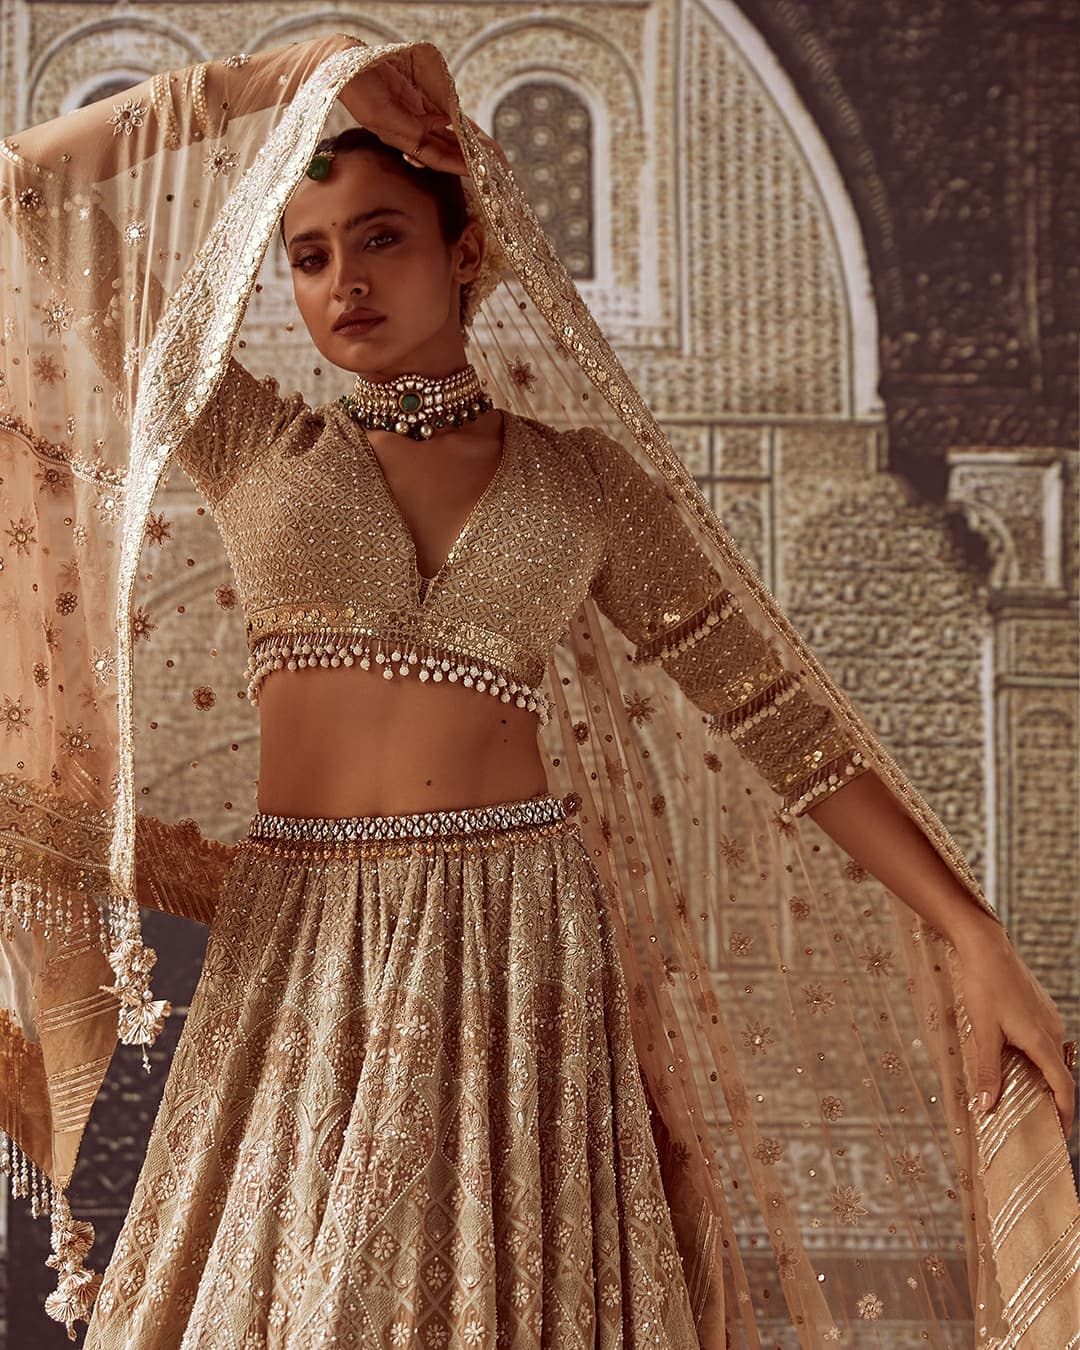 Sonali is wearing 16 kalis chikankari lehenga made in tones of green and pink on ivory. It is paired with a V-neck blouse with layered sleeves and a matching tulle dupatta with crystal detailing.  2021-09-11